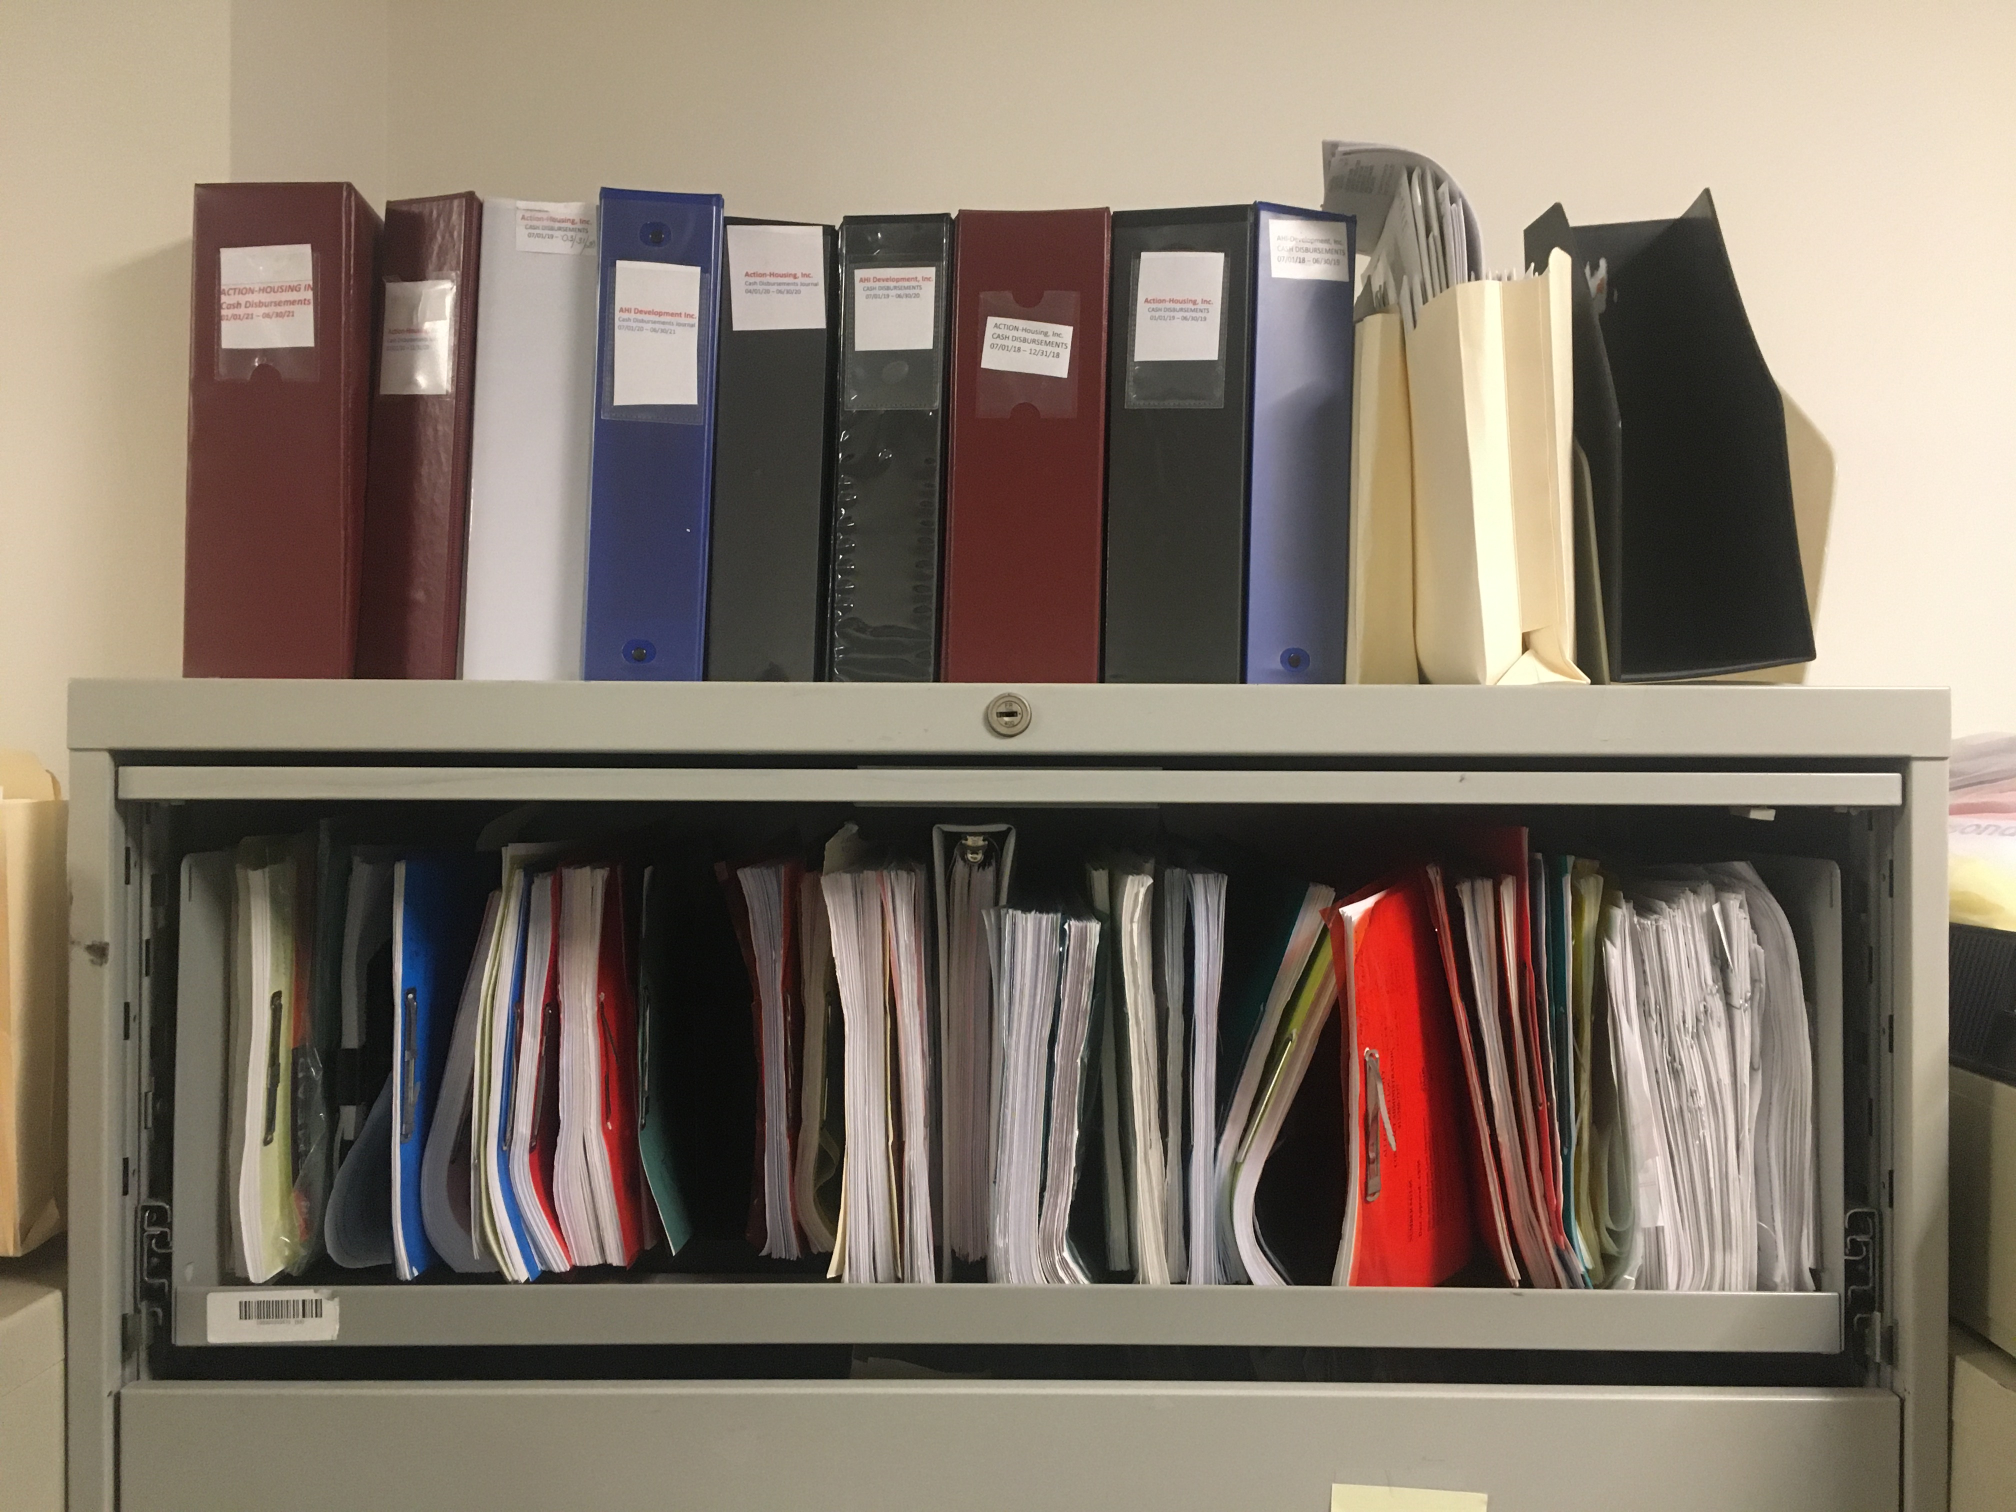 Accounting files and folders